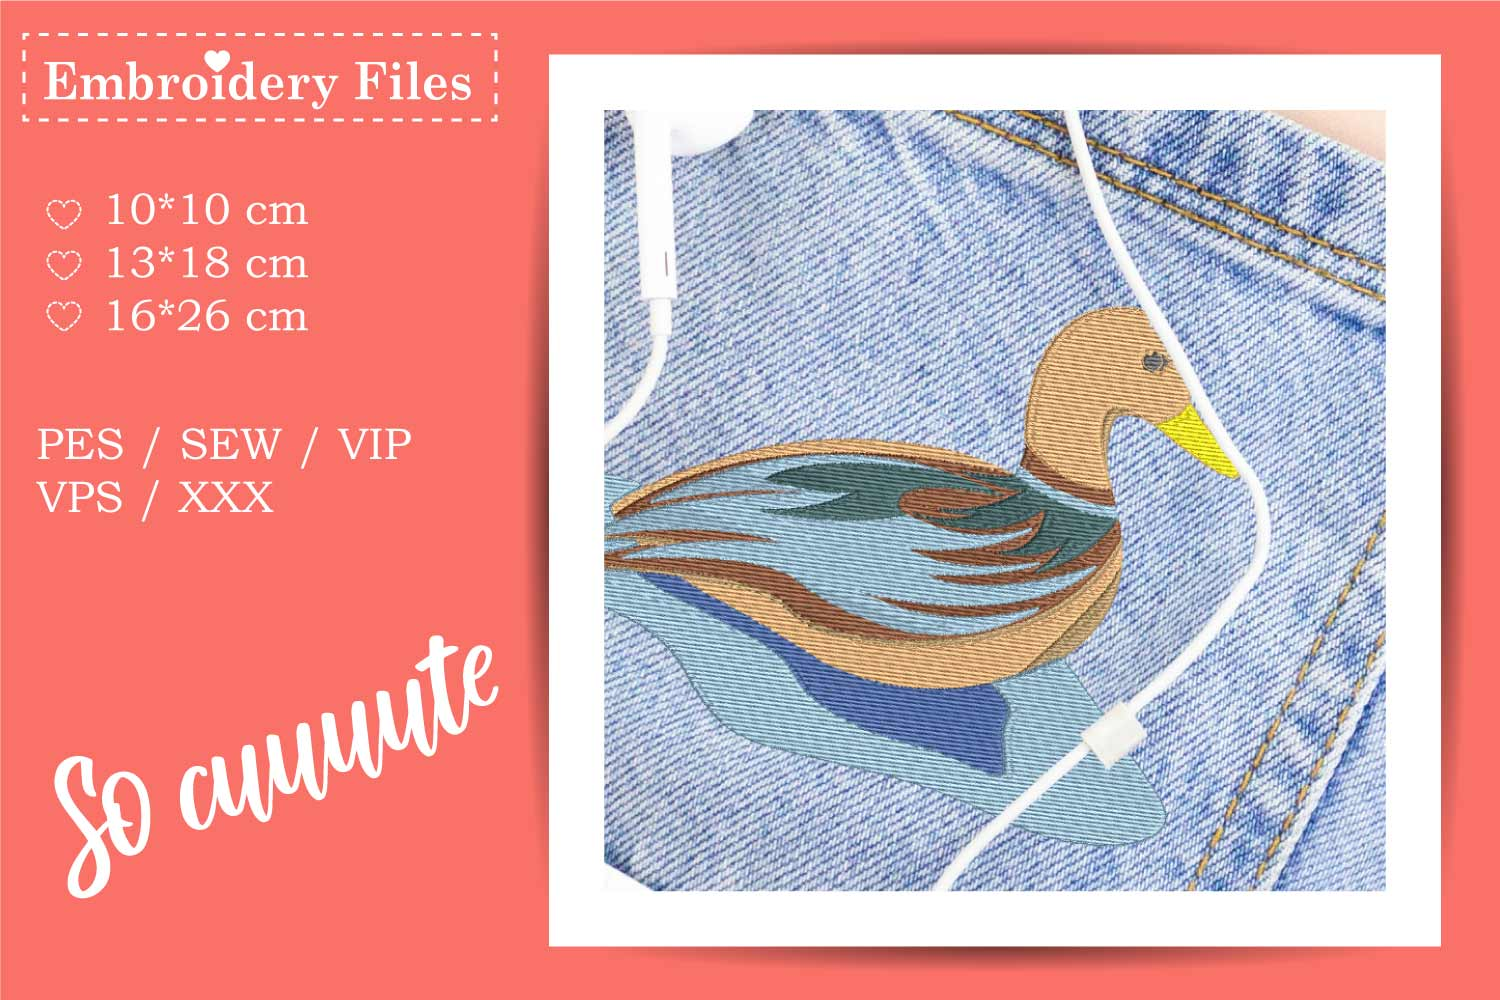 A cute Duck - Embroidery File example image 3